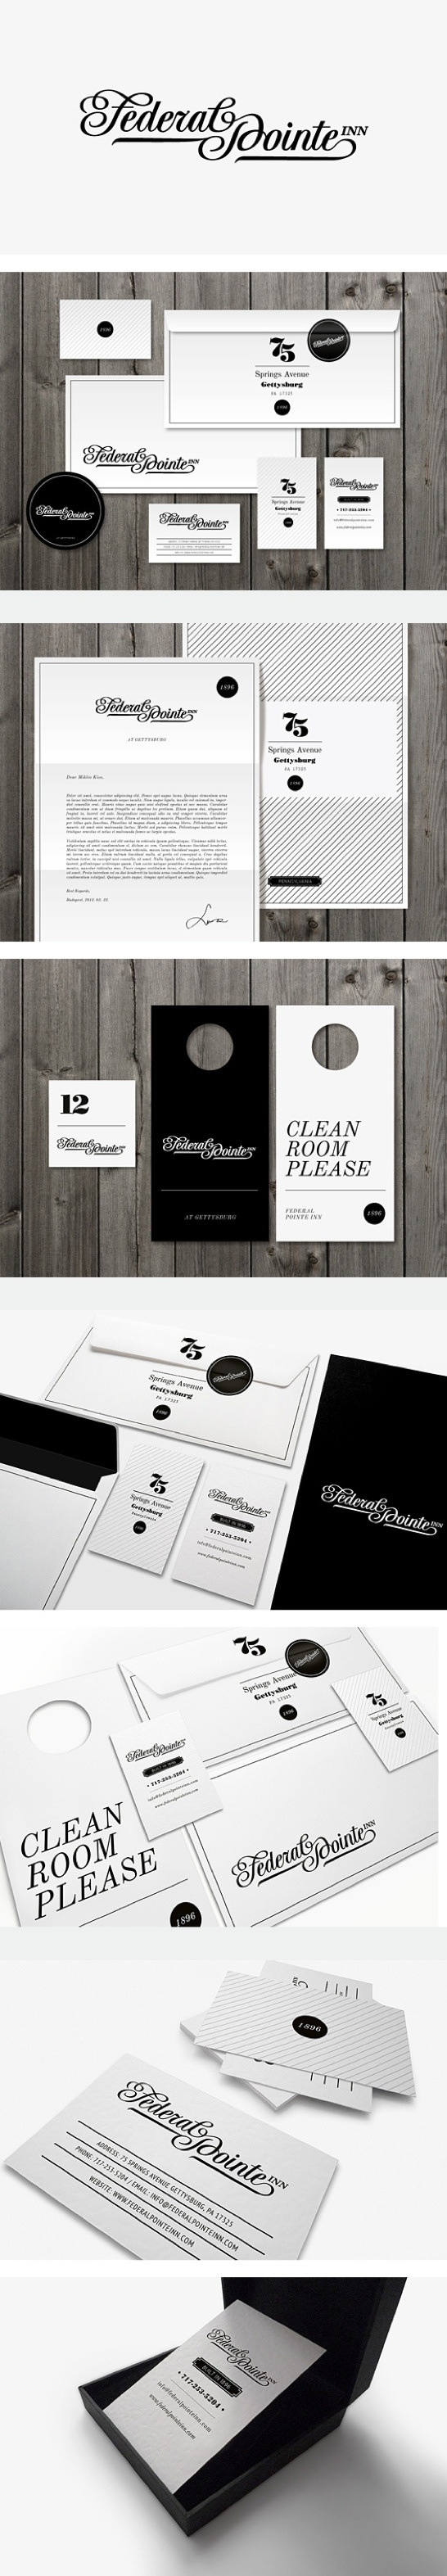 Federal Pointe Inn Identity by Miklós Kiss